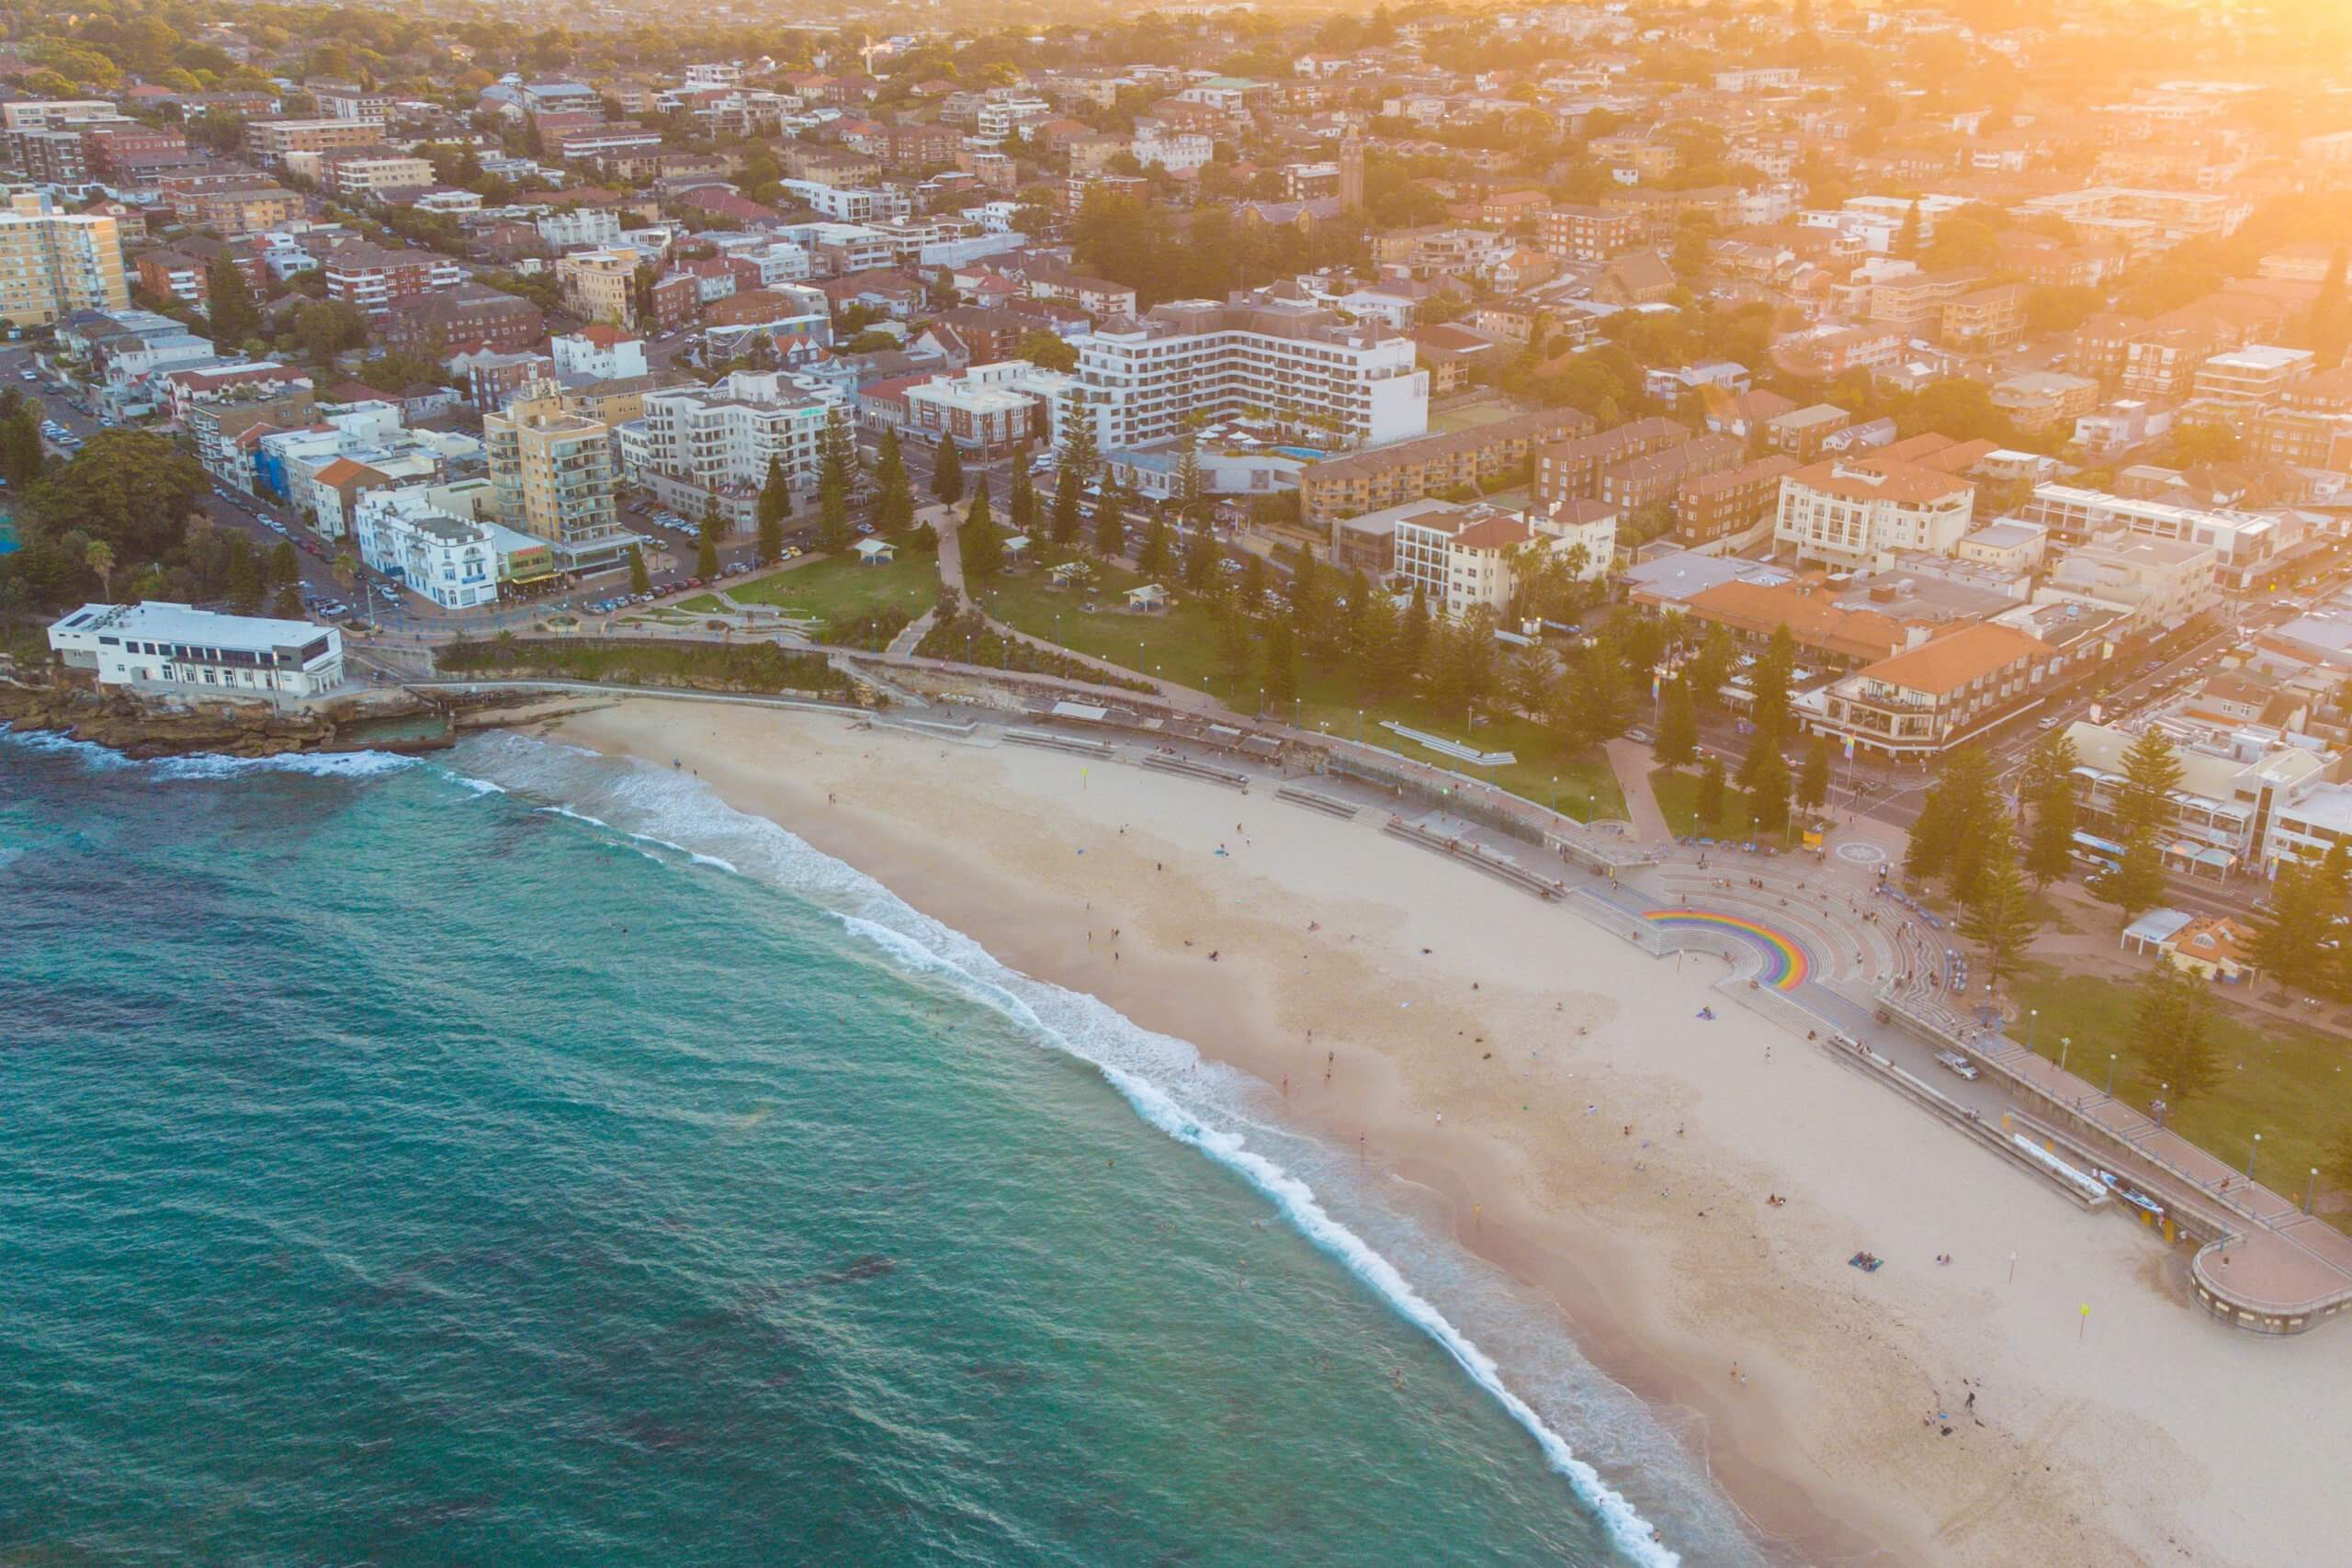 Aerial view of Crowne Plaza Sydney Coogee beach